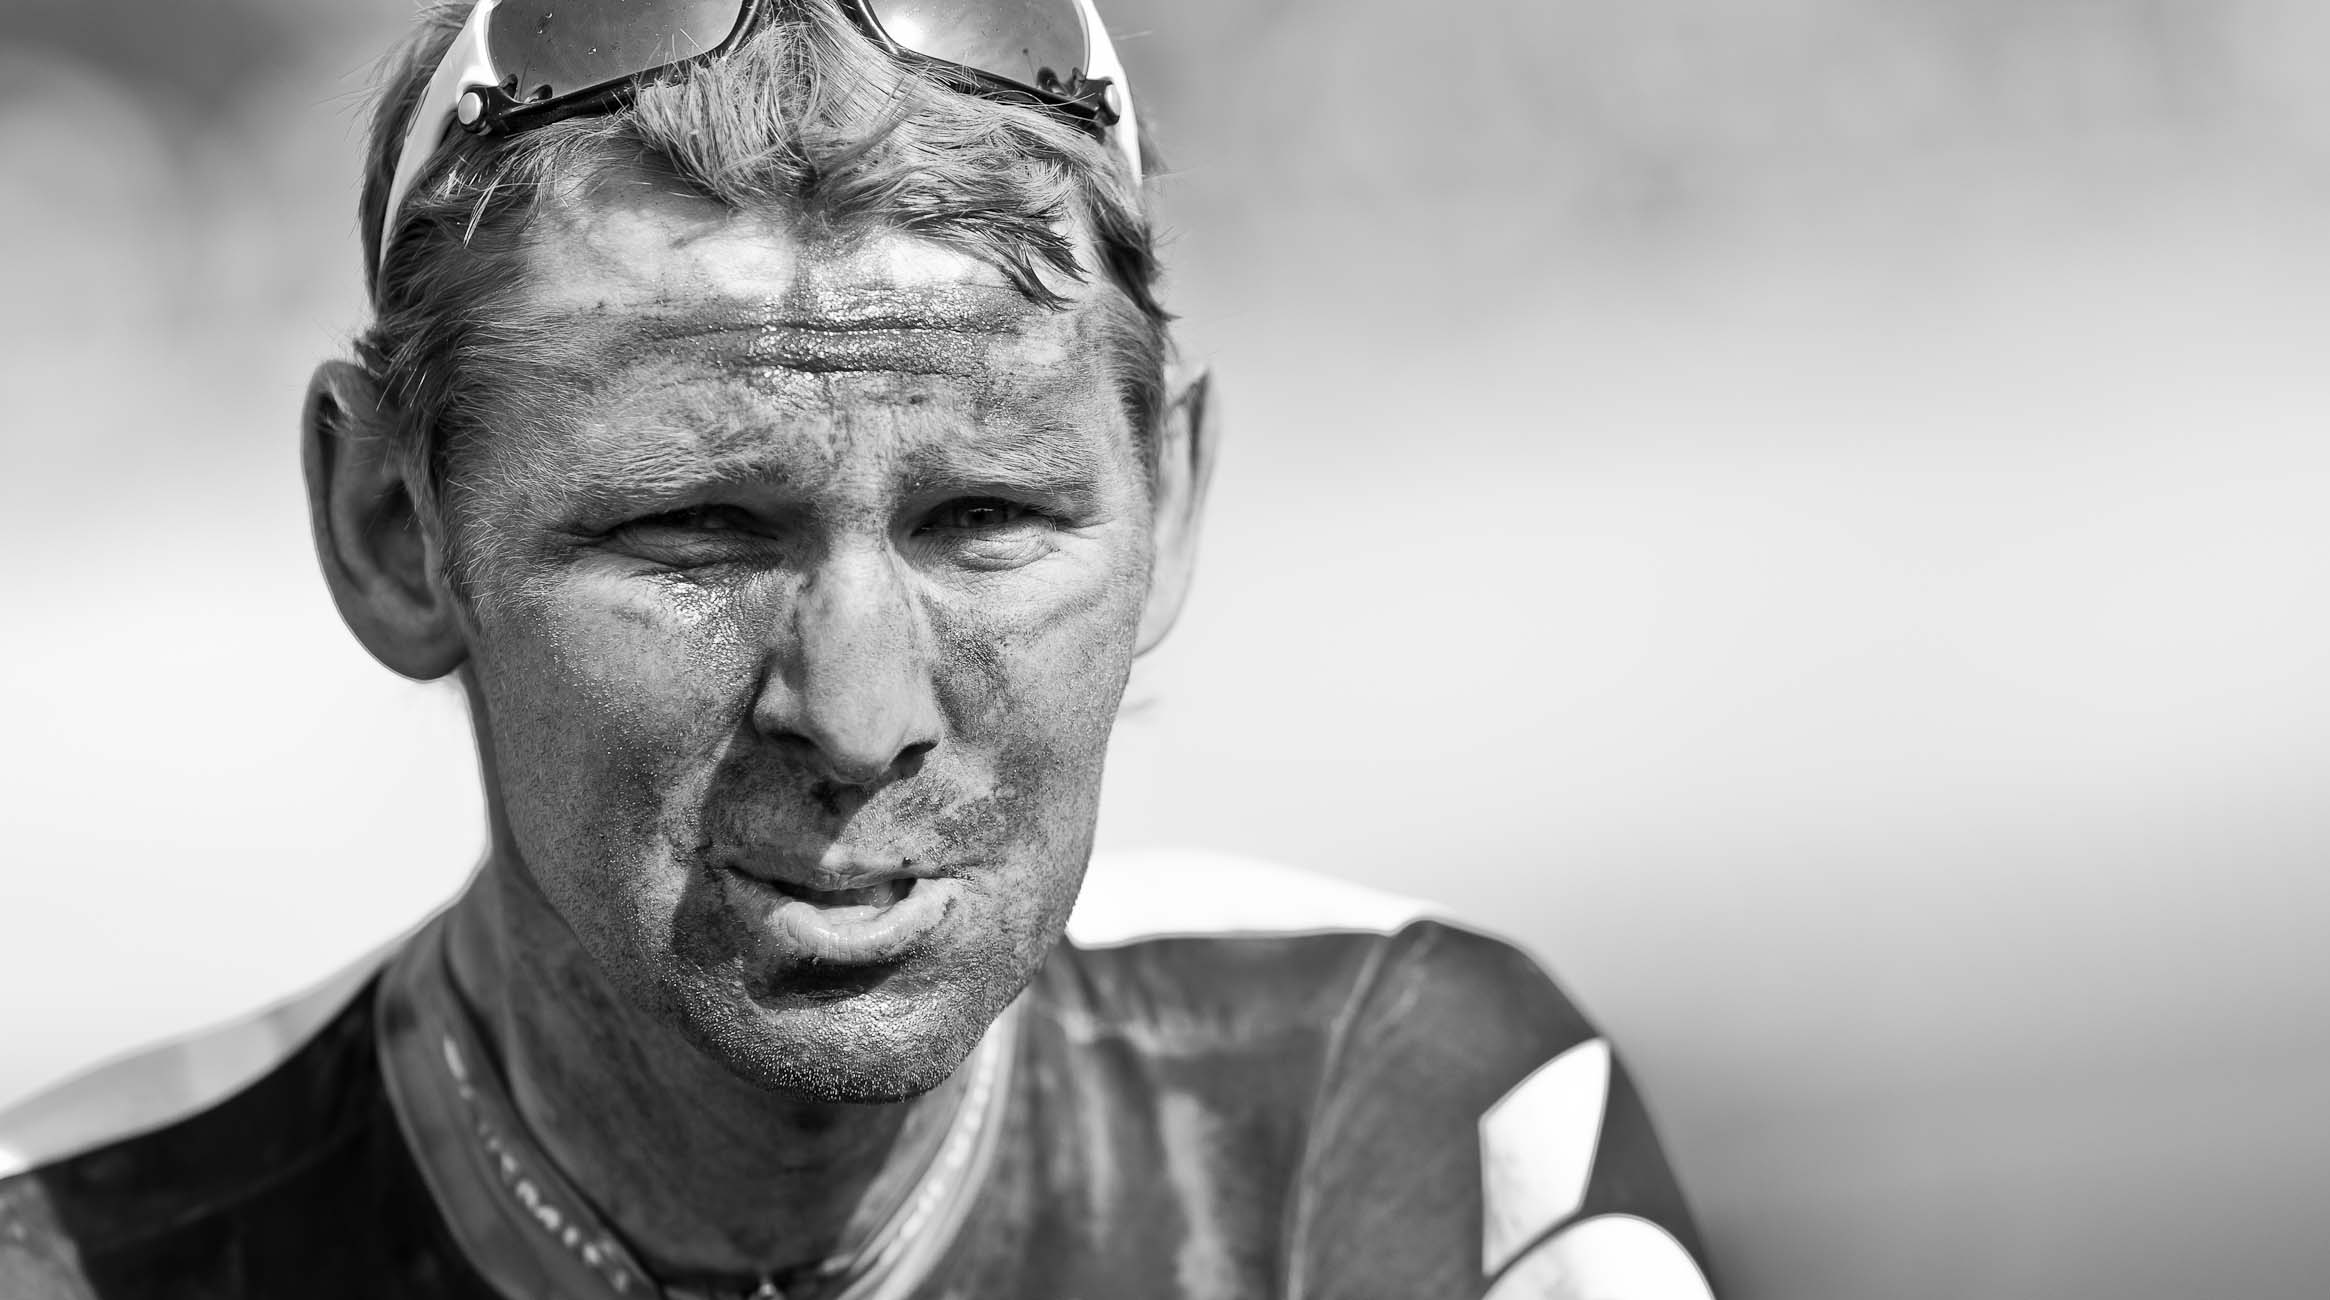 Garmin rider caked with dust and sweat